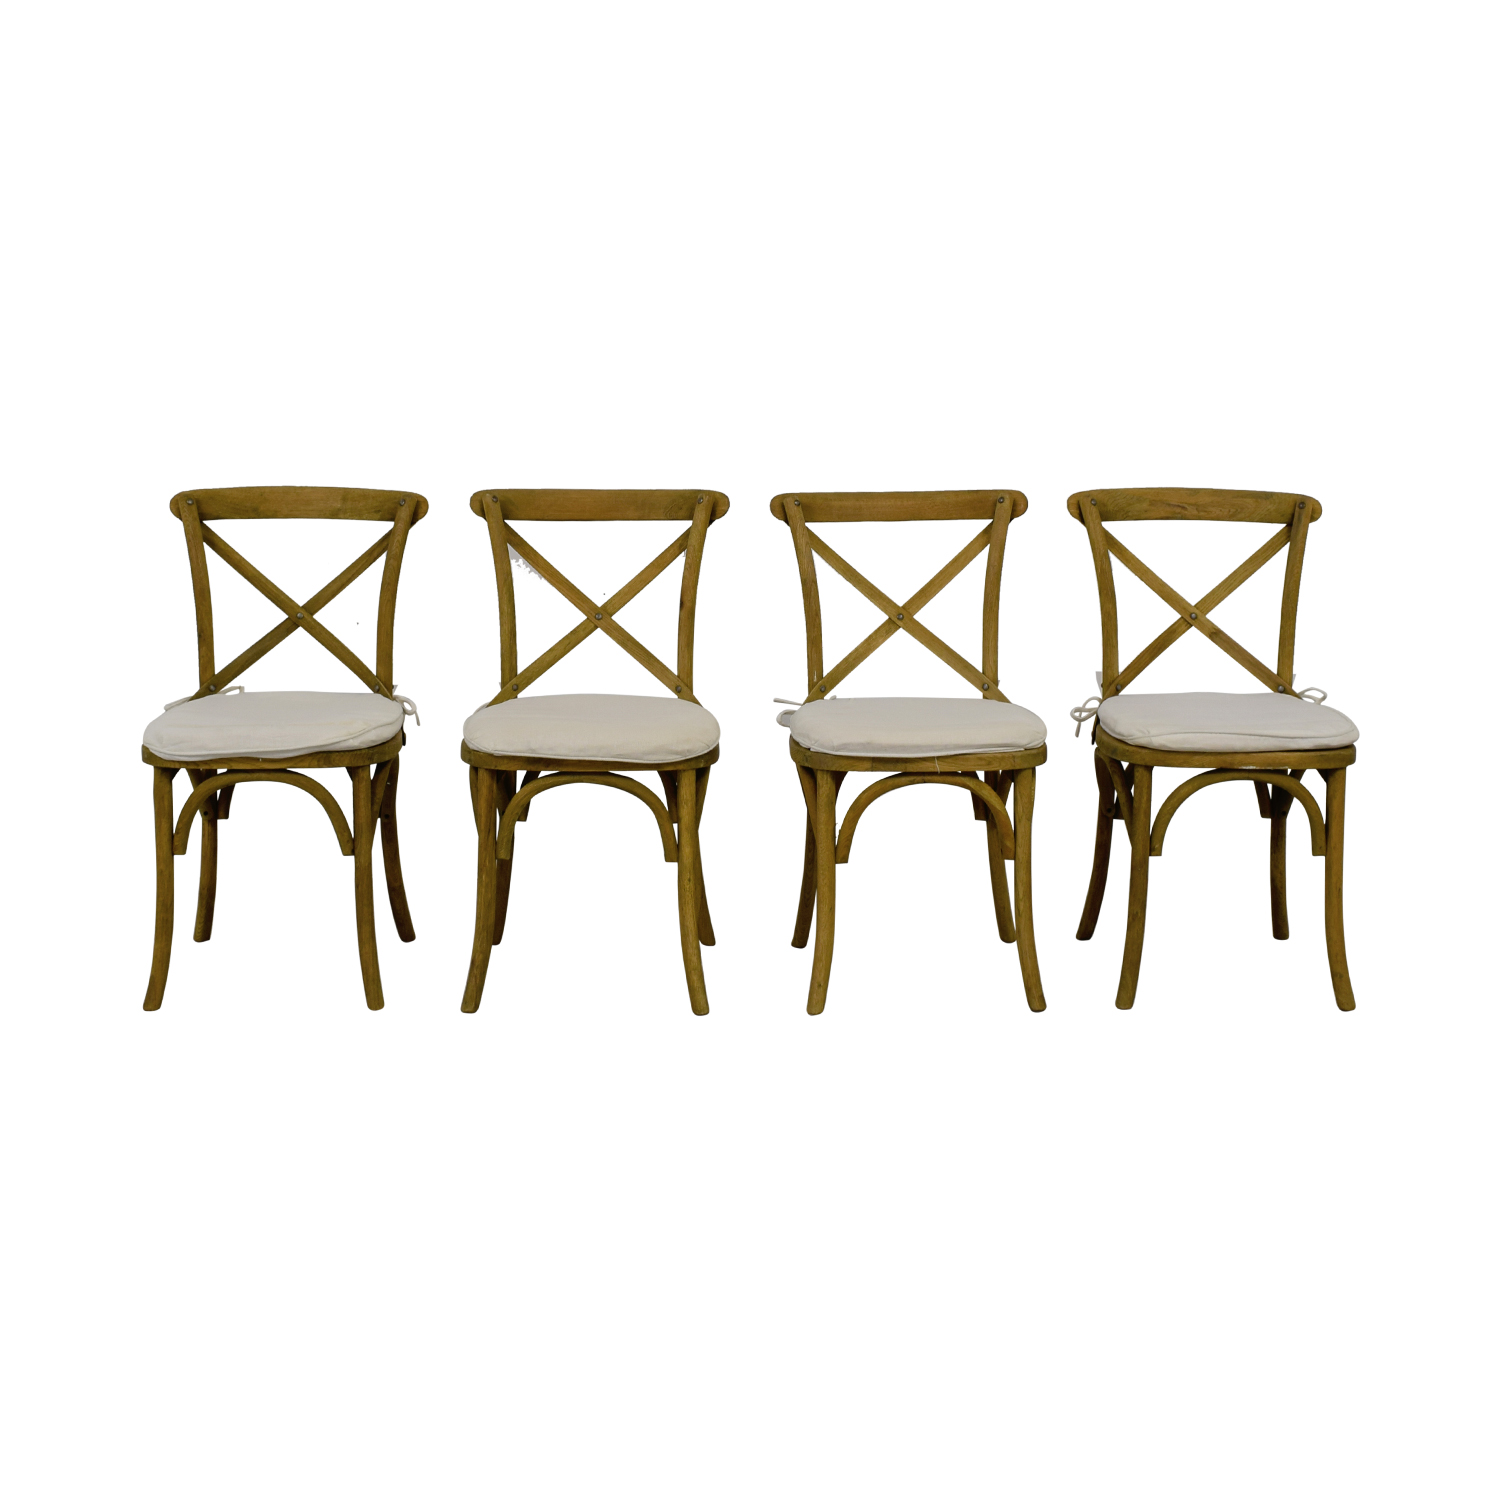 Restoration Hardware Restoration Hardware Madeleine Chairs with Cushion second hand